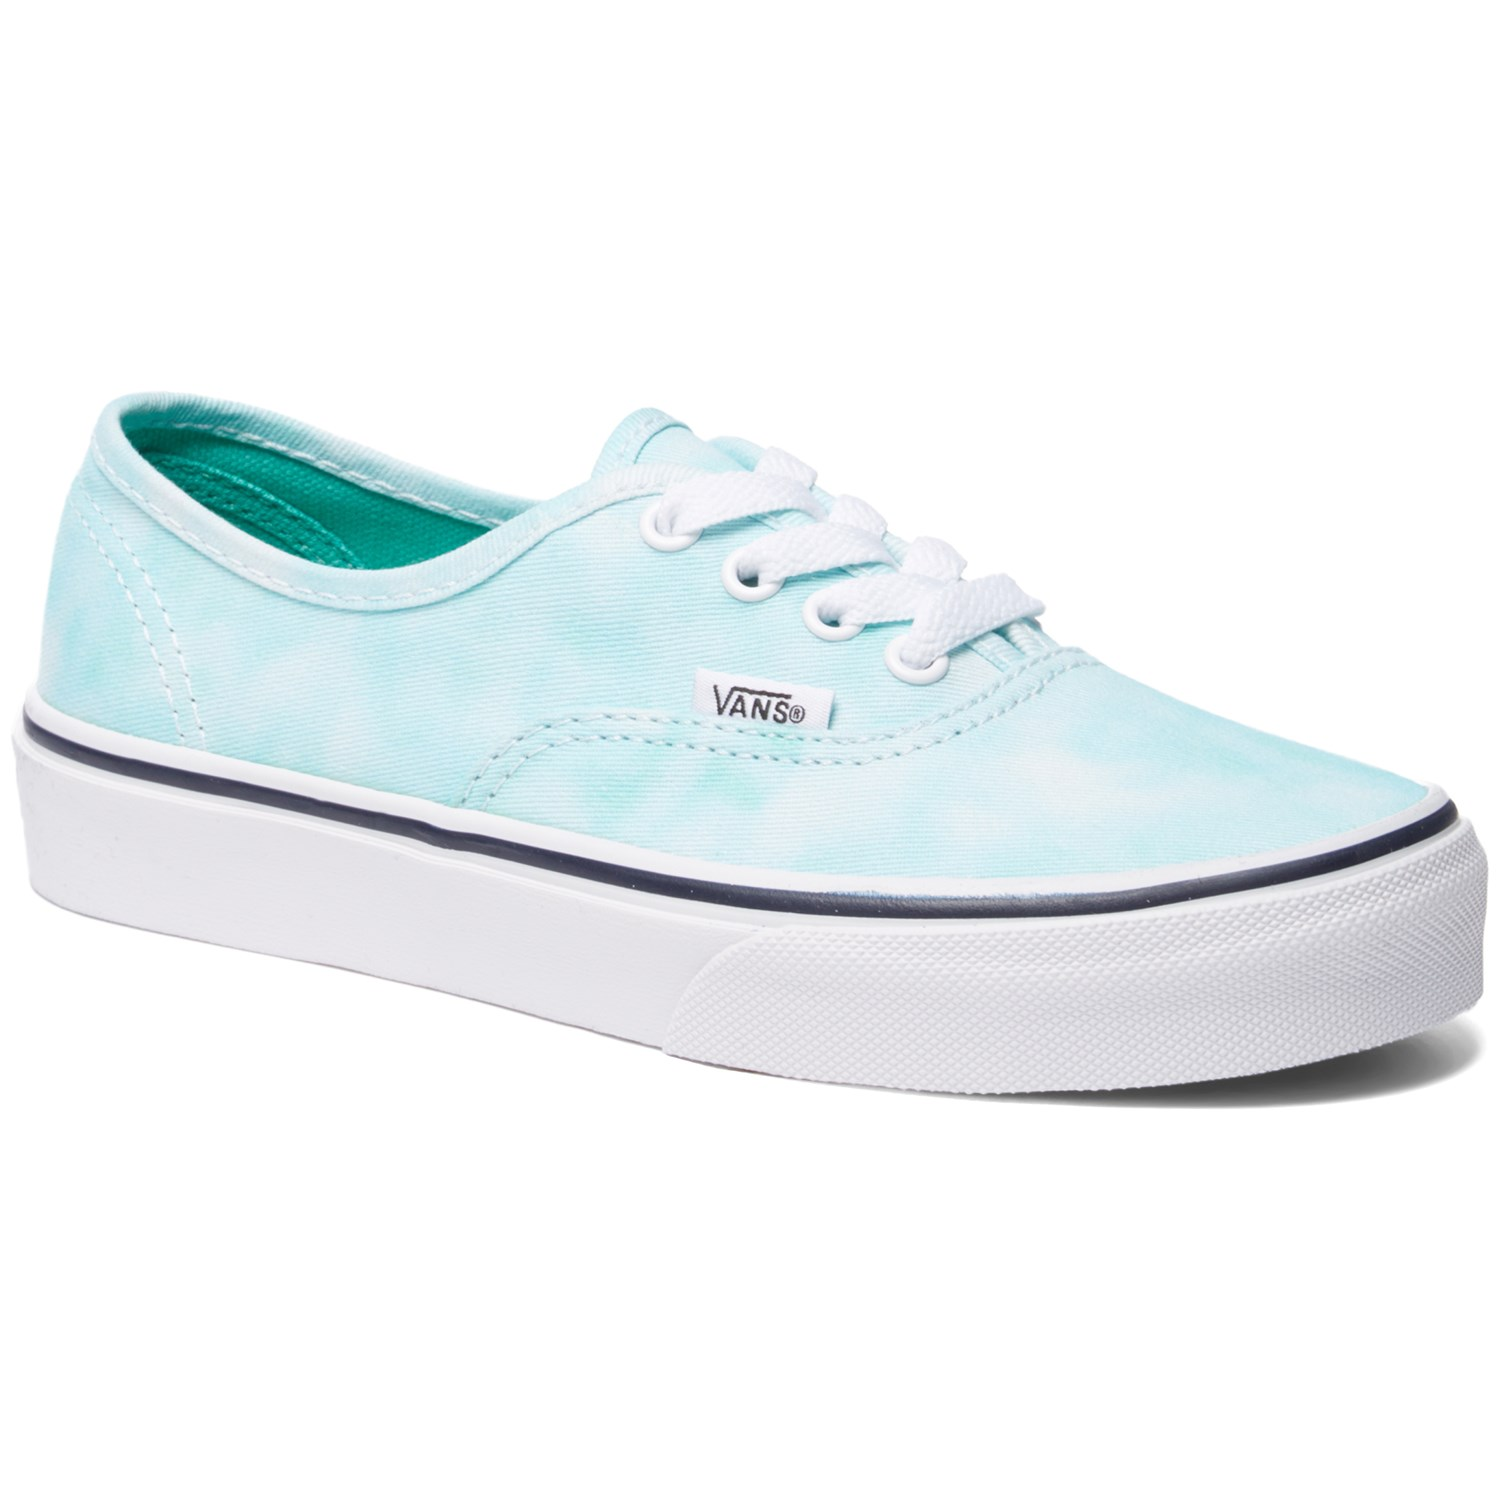 ea47039e542dea Buy 2 OFF ANY vans shoes for kids on sale CASE AND GET 70% OFF!